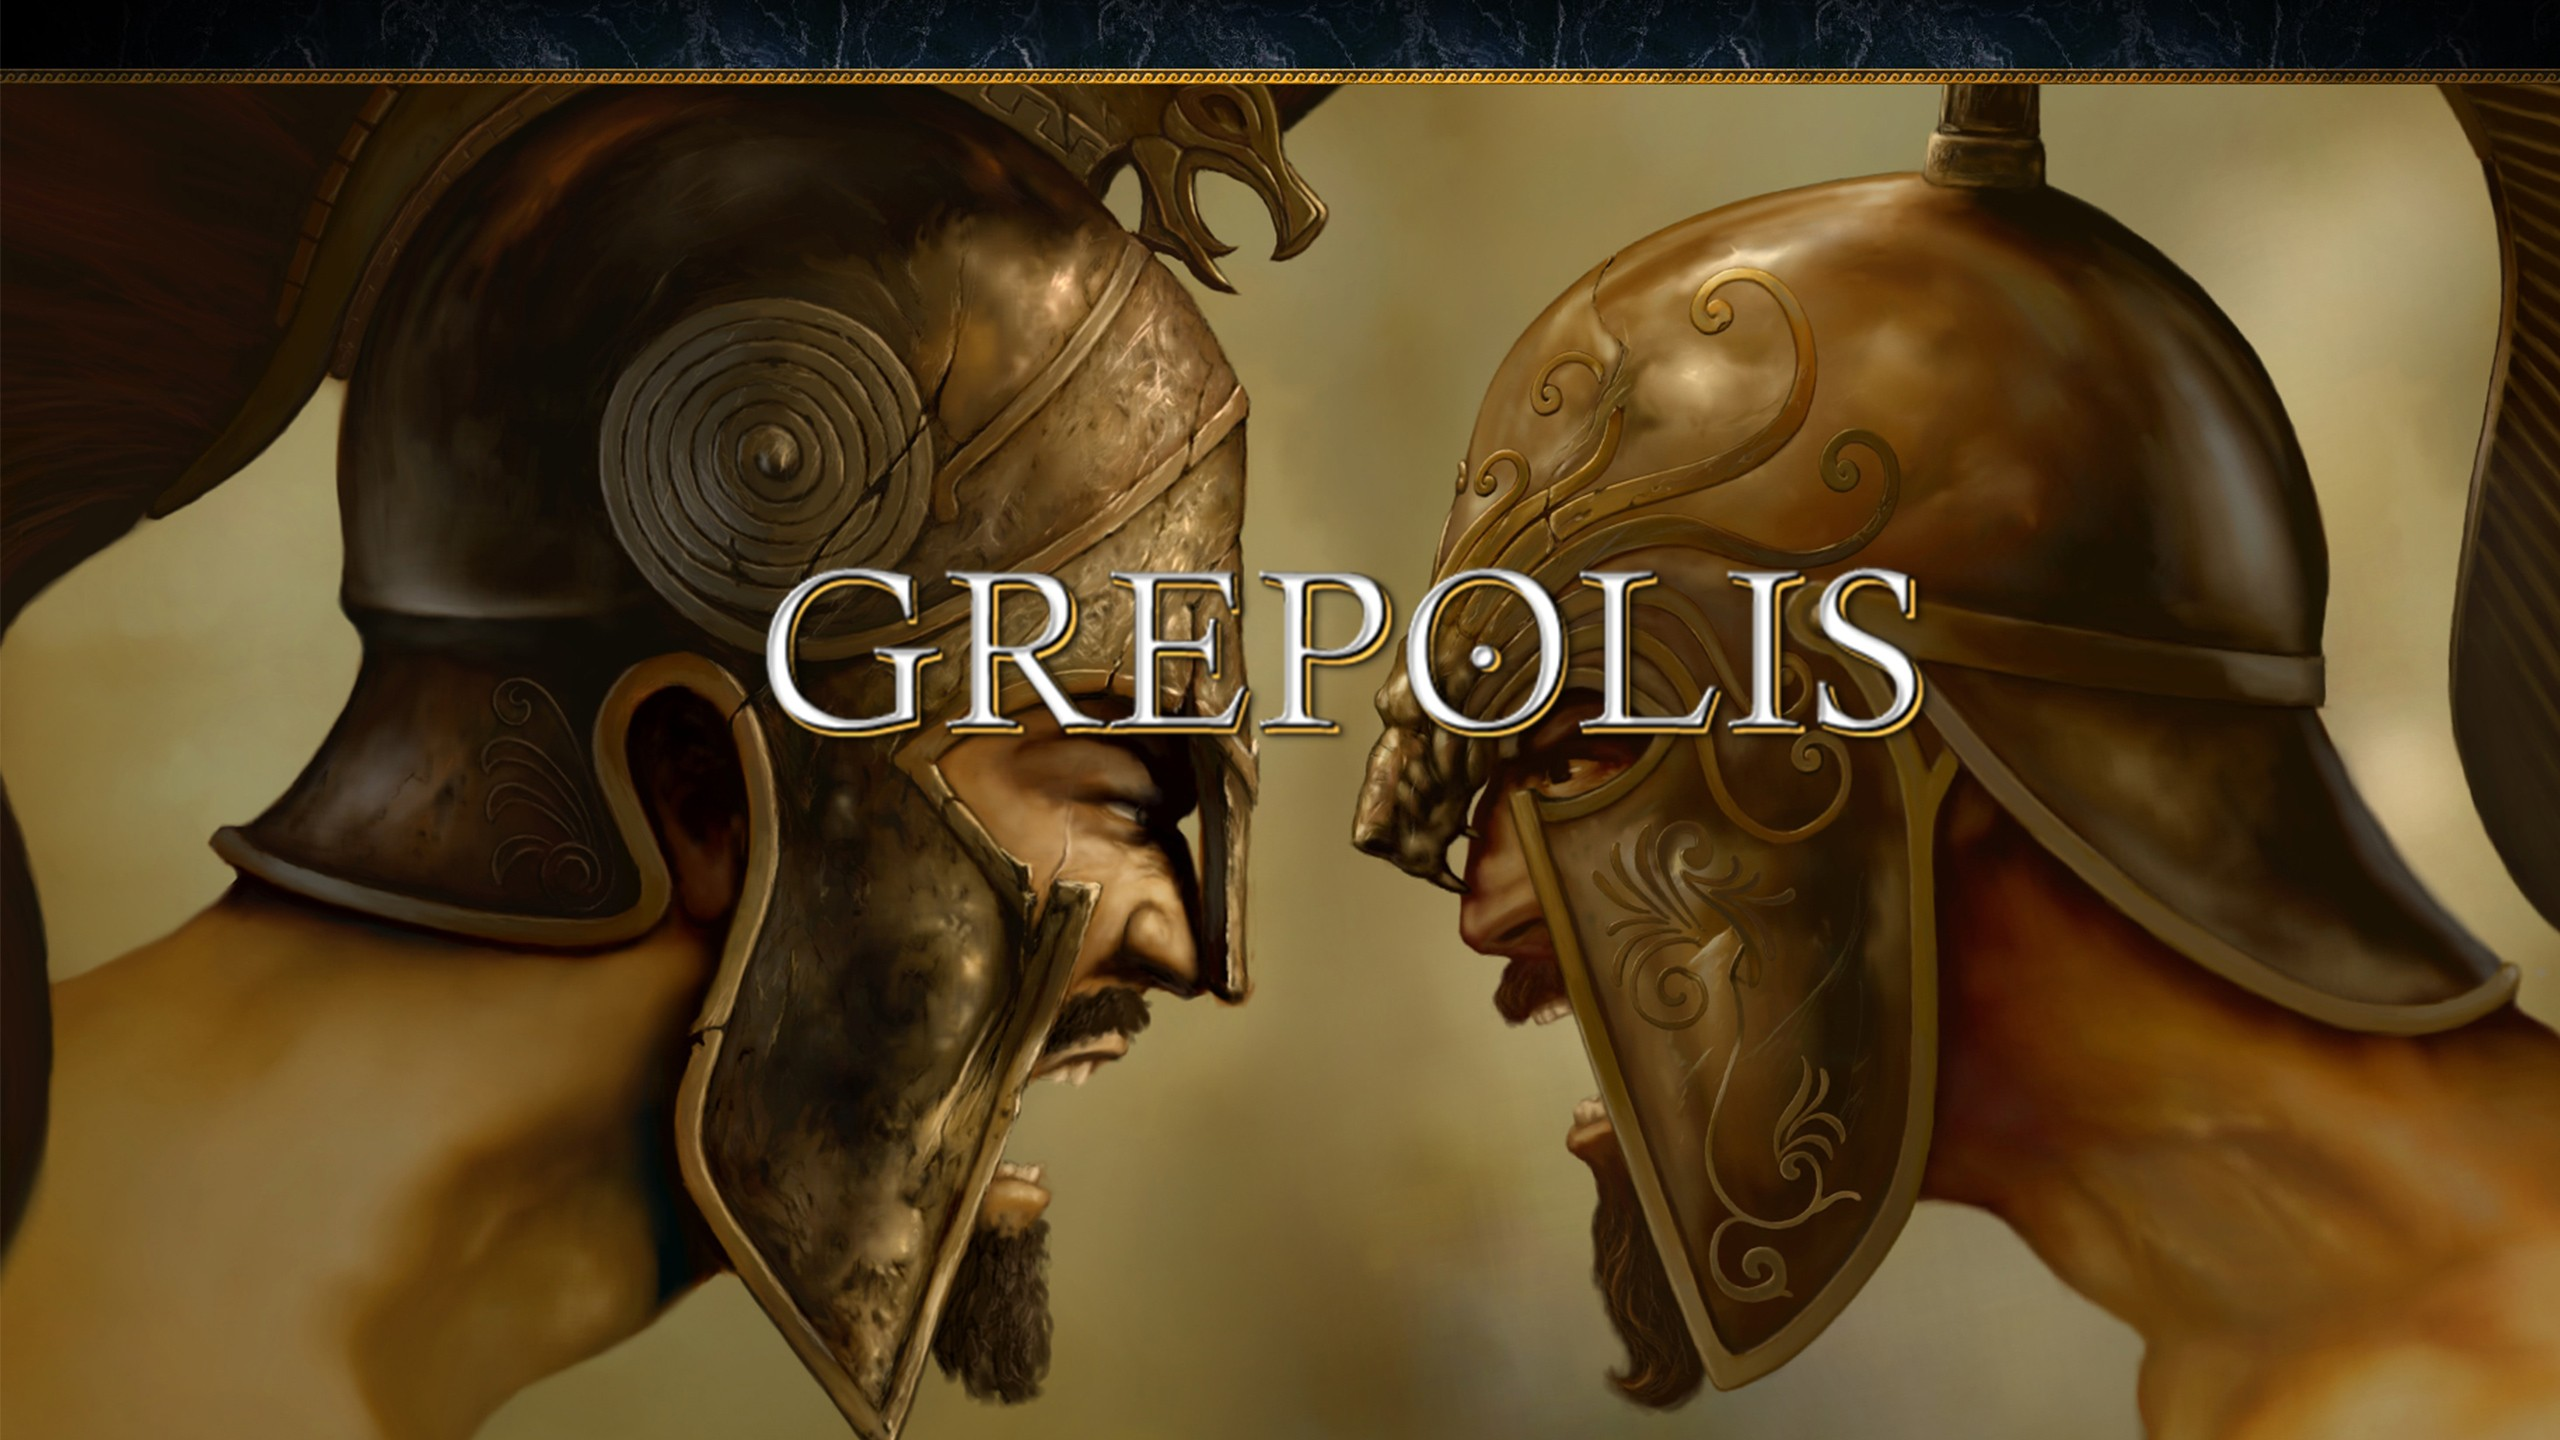 Grepolis ritual wedding